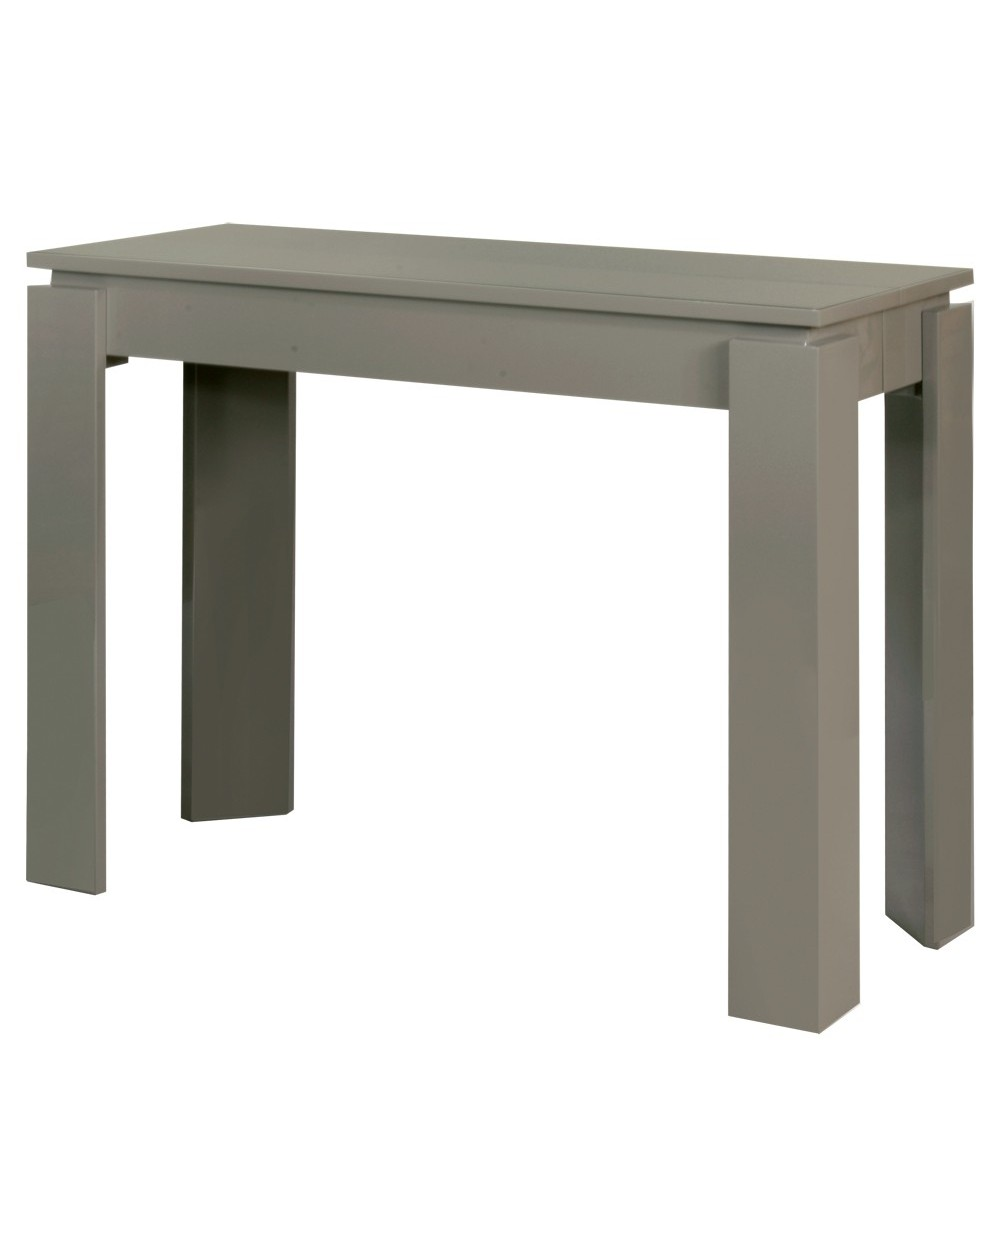 Table console extensible bois ou laque tetris jusqu a 18 for Table extensible 18 couverts